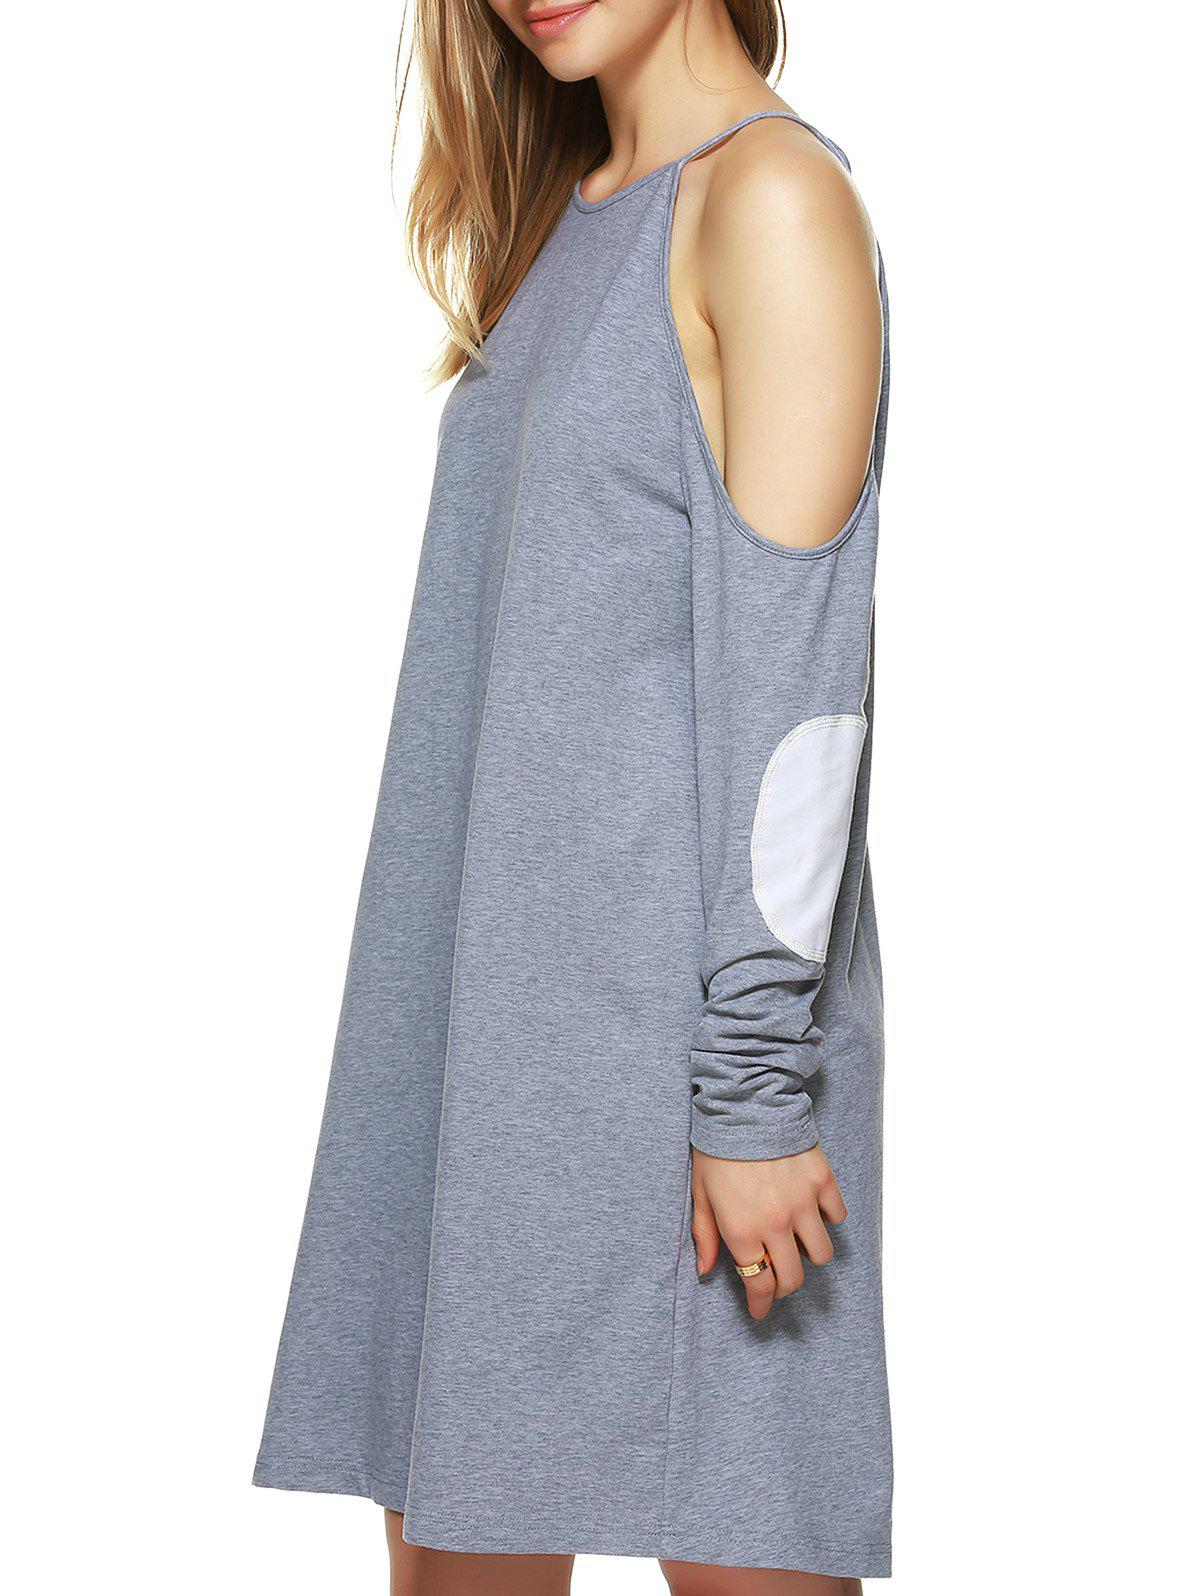 Cold Shoulder Appliqued Shift Dress - GRAY XL